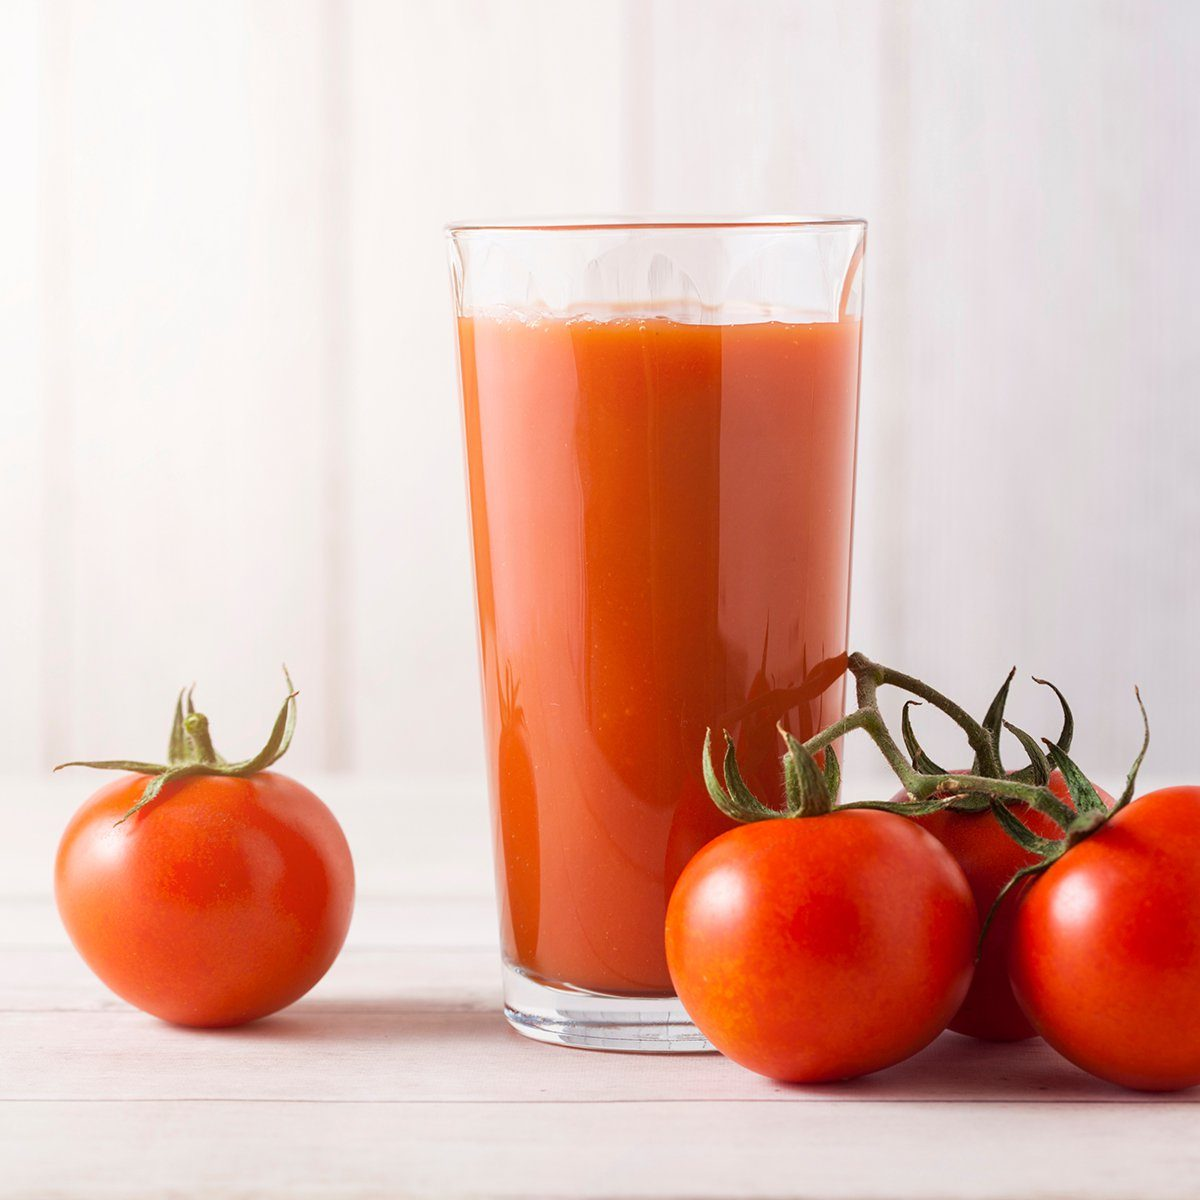 Glass of fresh organic tomato juice with raw tomatoes on light wooden background